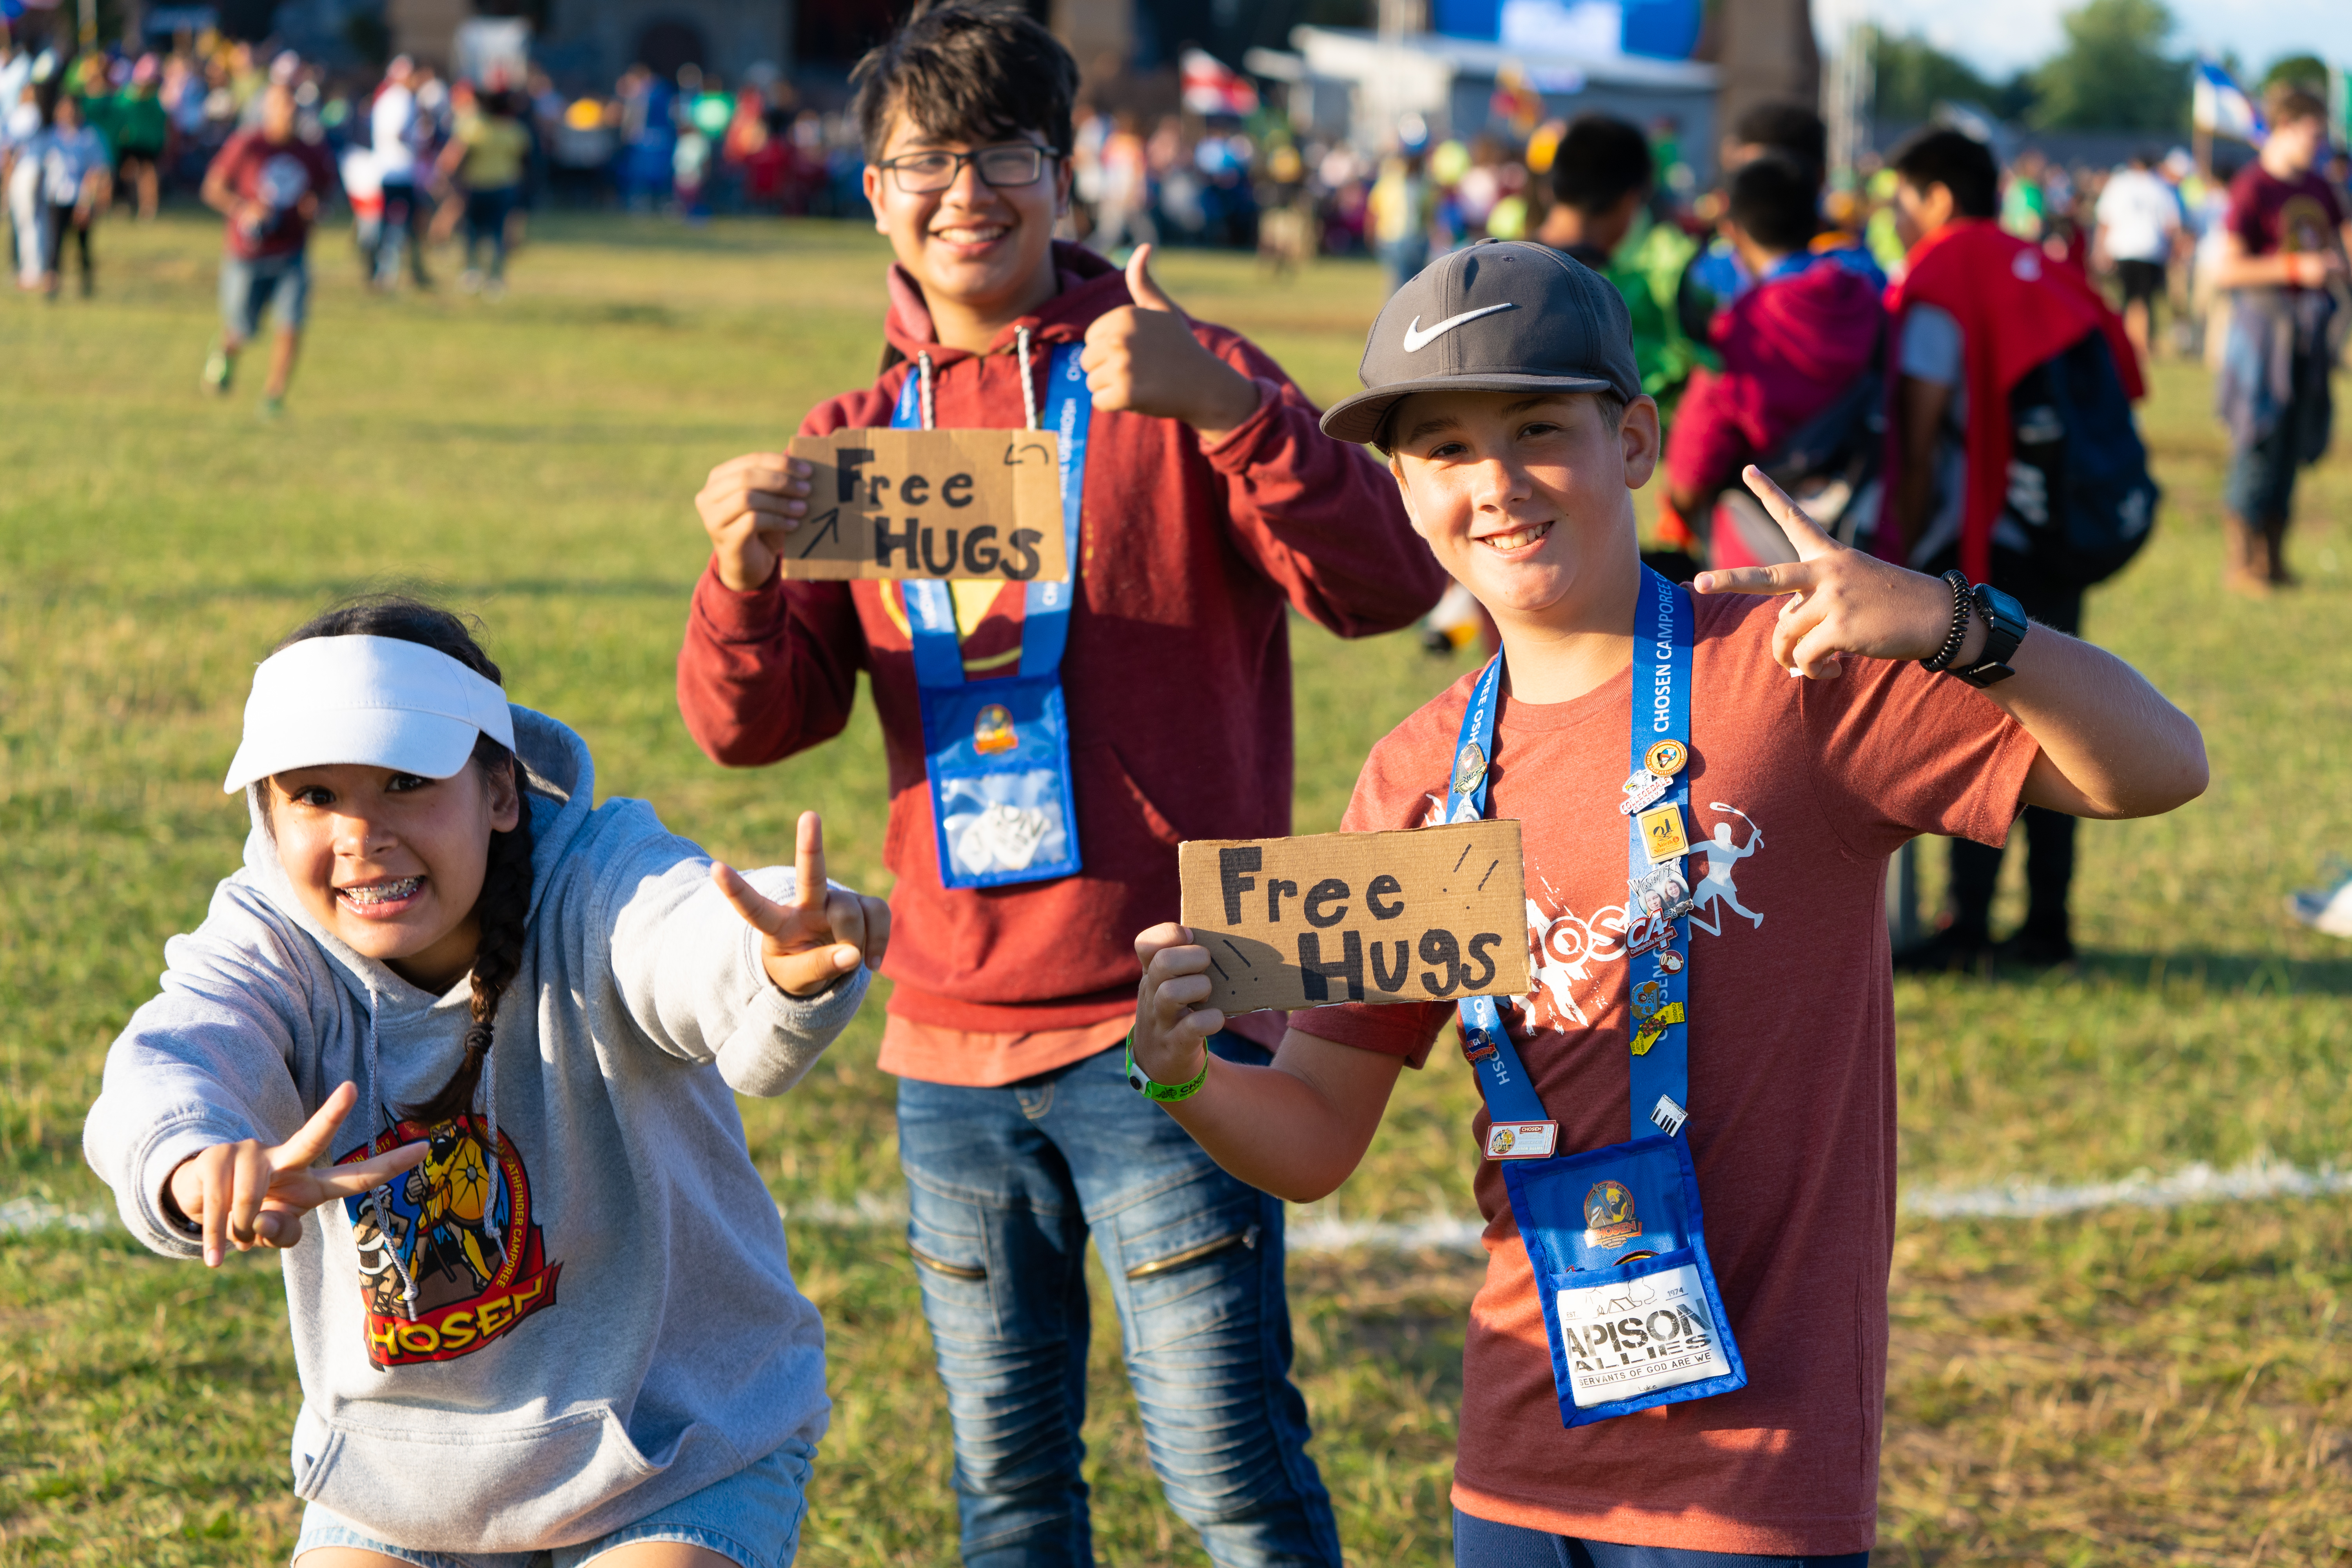 While not an official Compassion Project at the camporee, these Pathfinders show compassion by offering free hugs near the main stage. Photo by Terrence Bowen